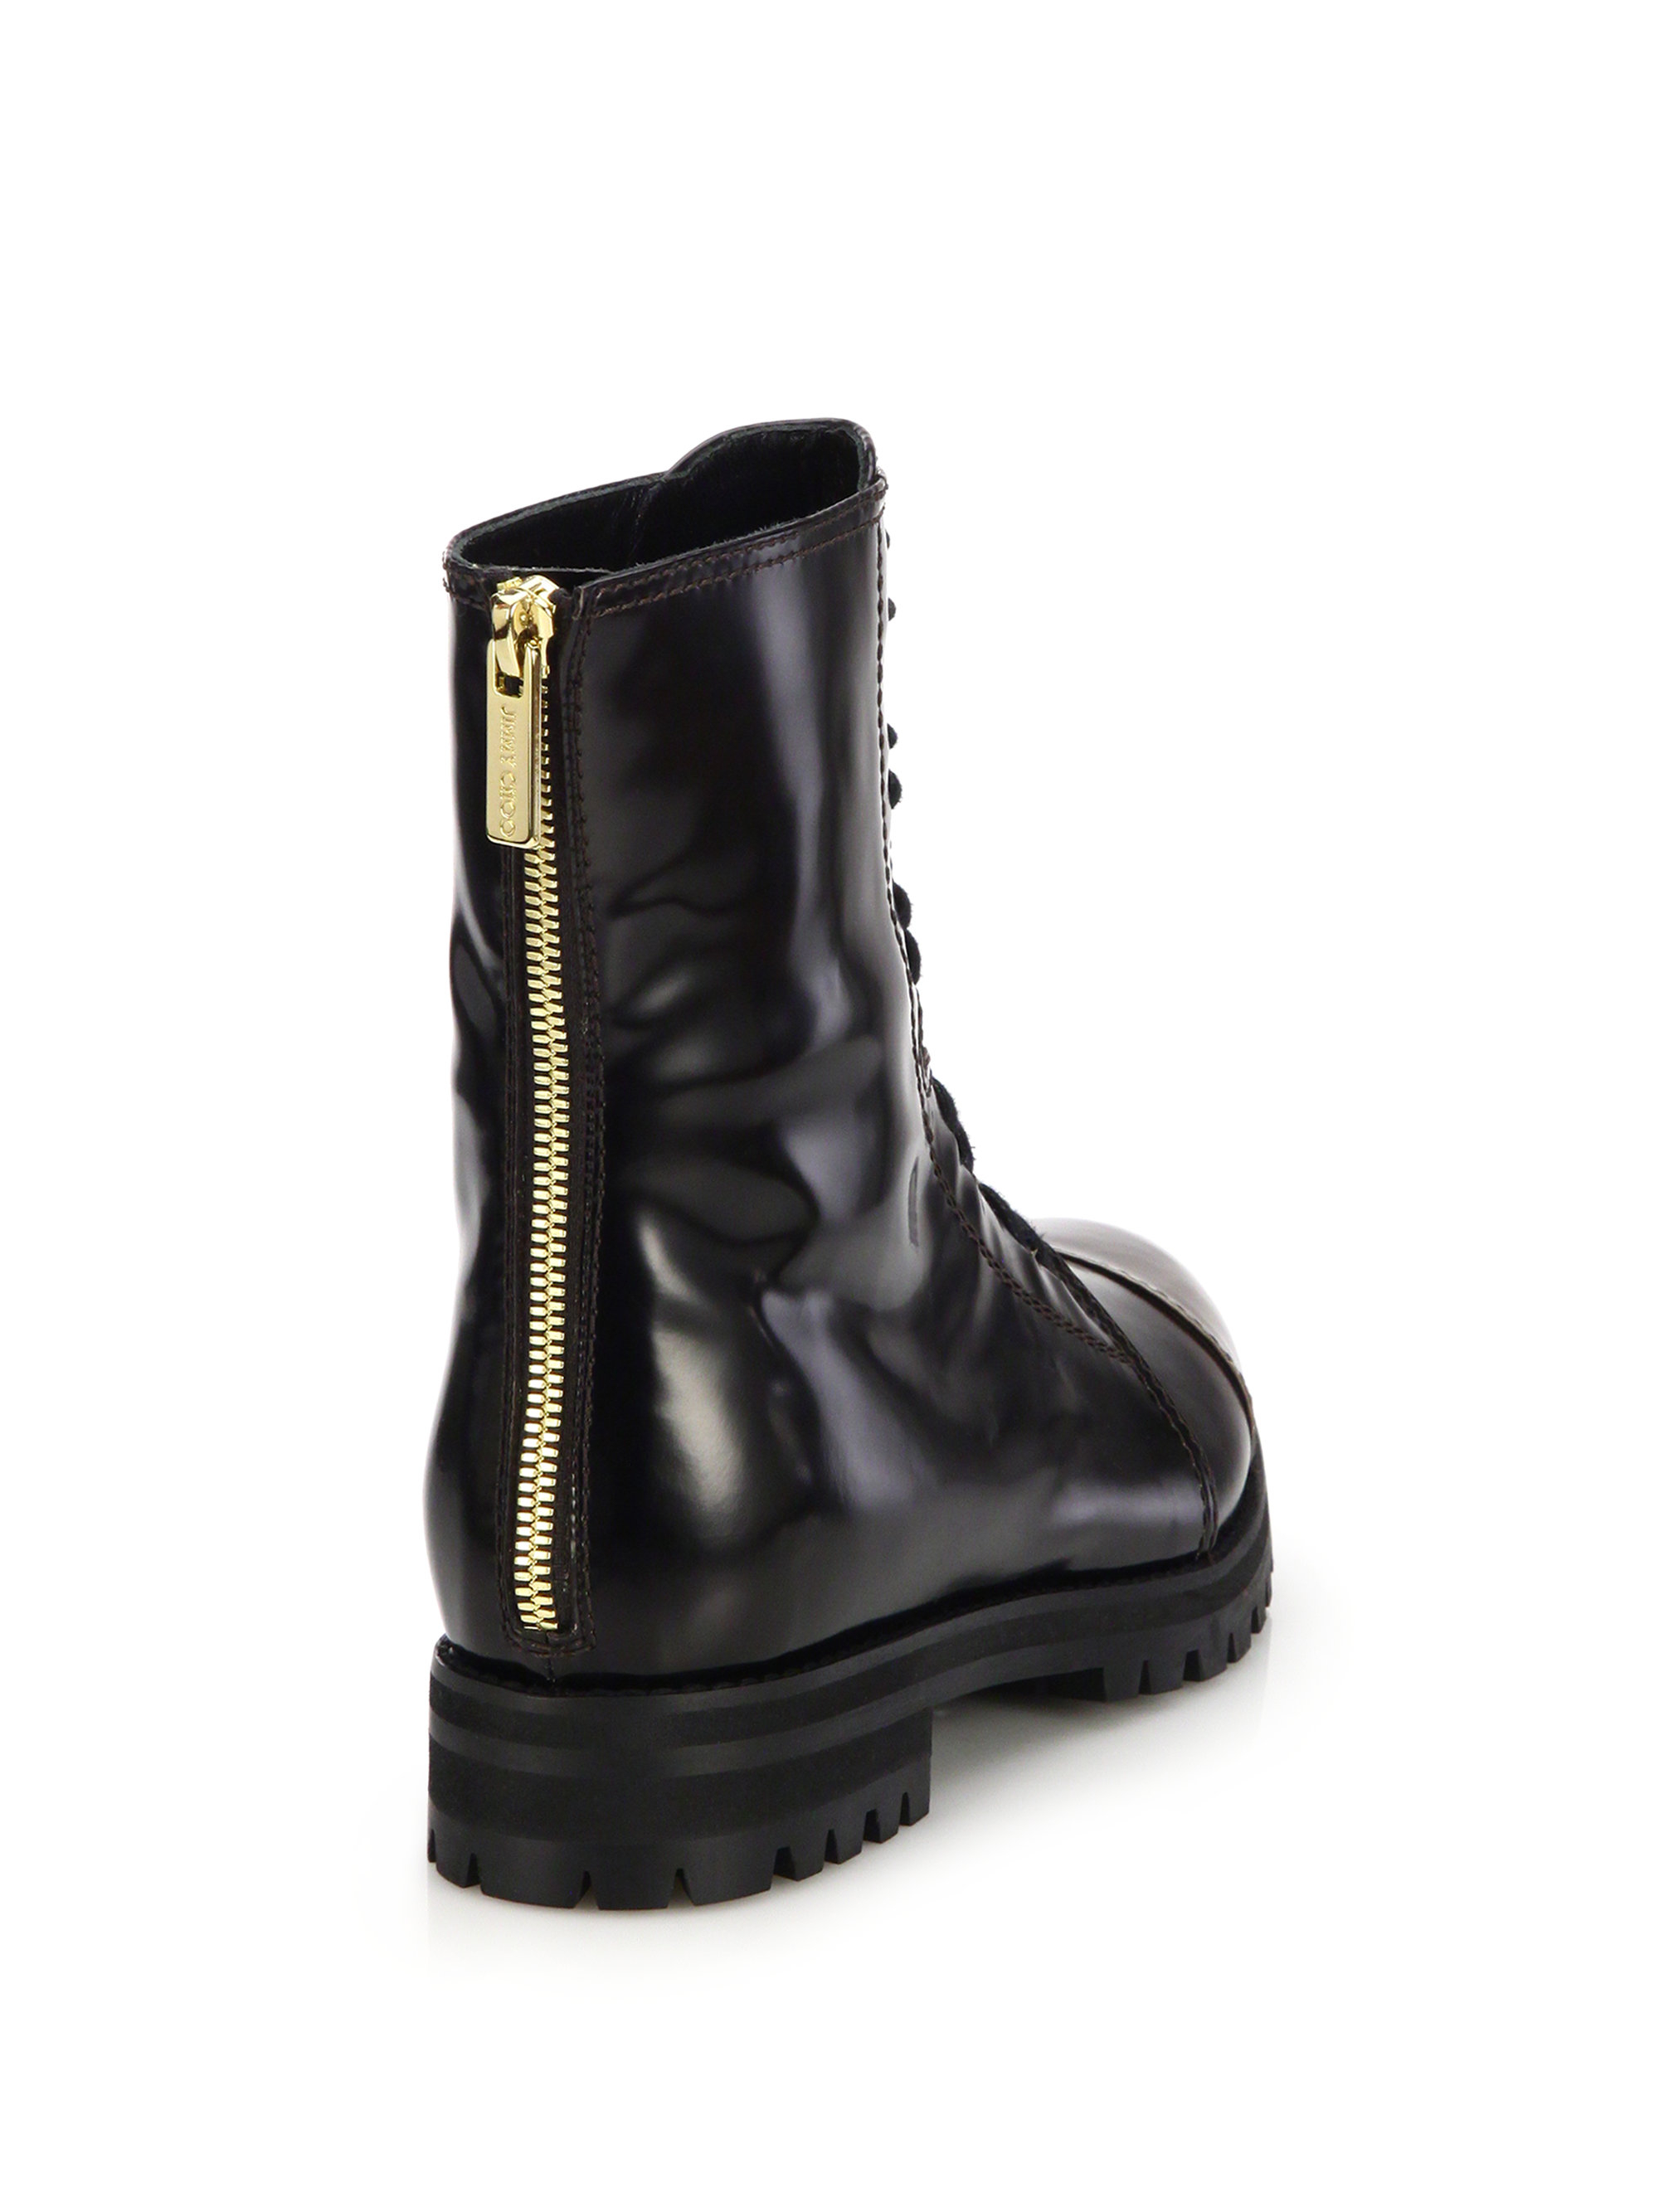 ada26ac10 ... purchase lyst jimmy choo haze glossed leather combat boots in black  54c82 990e4